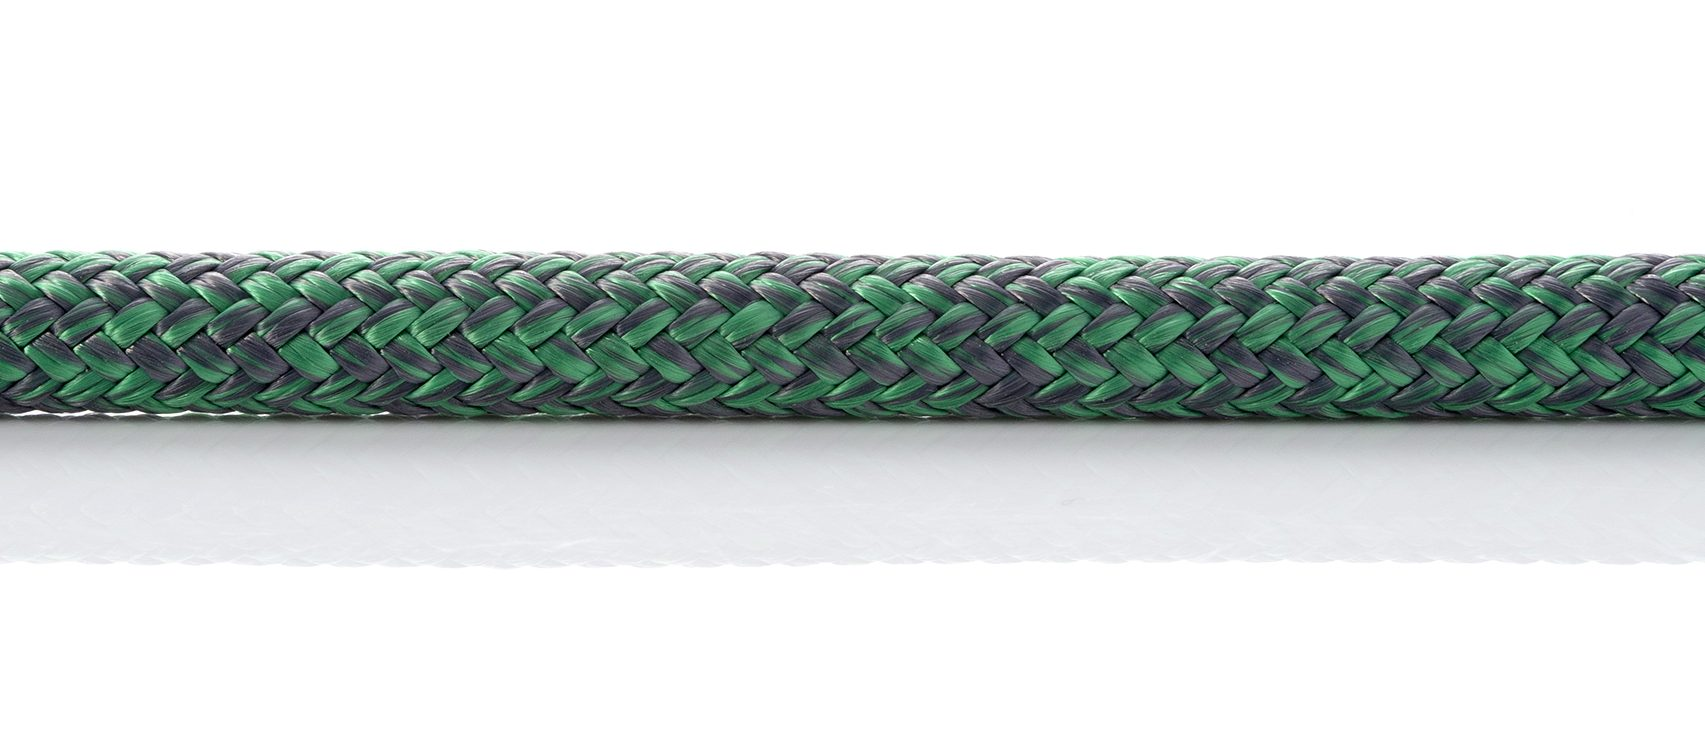 GP Braid Rope